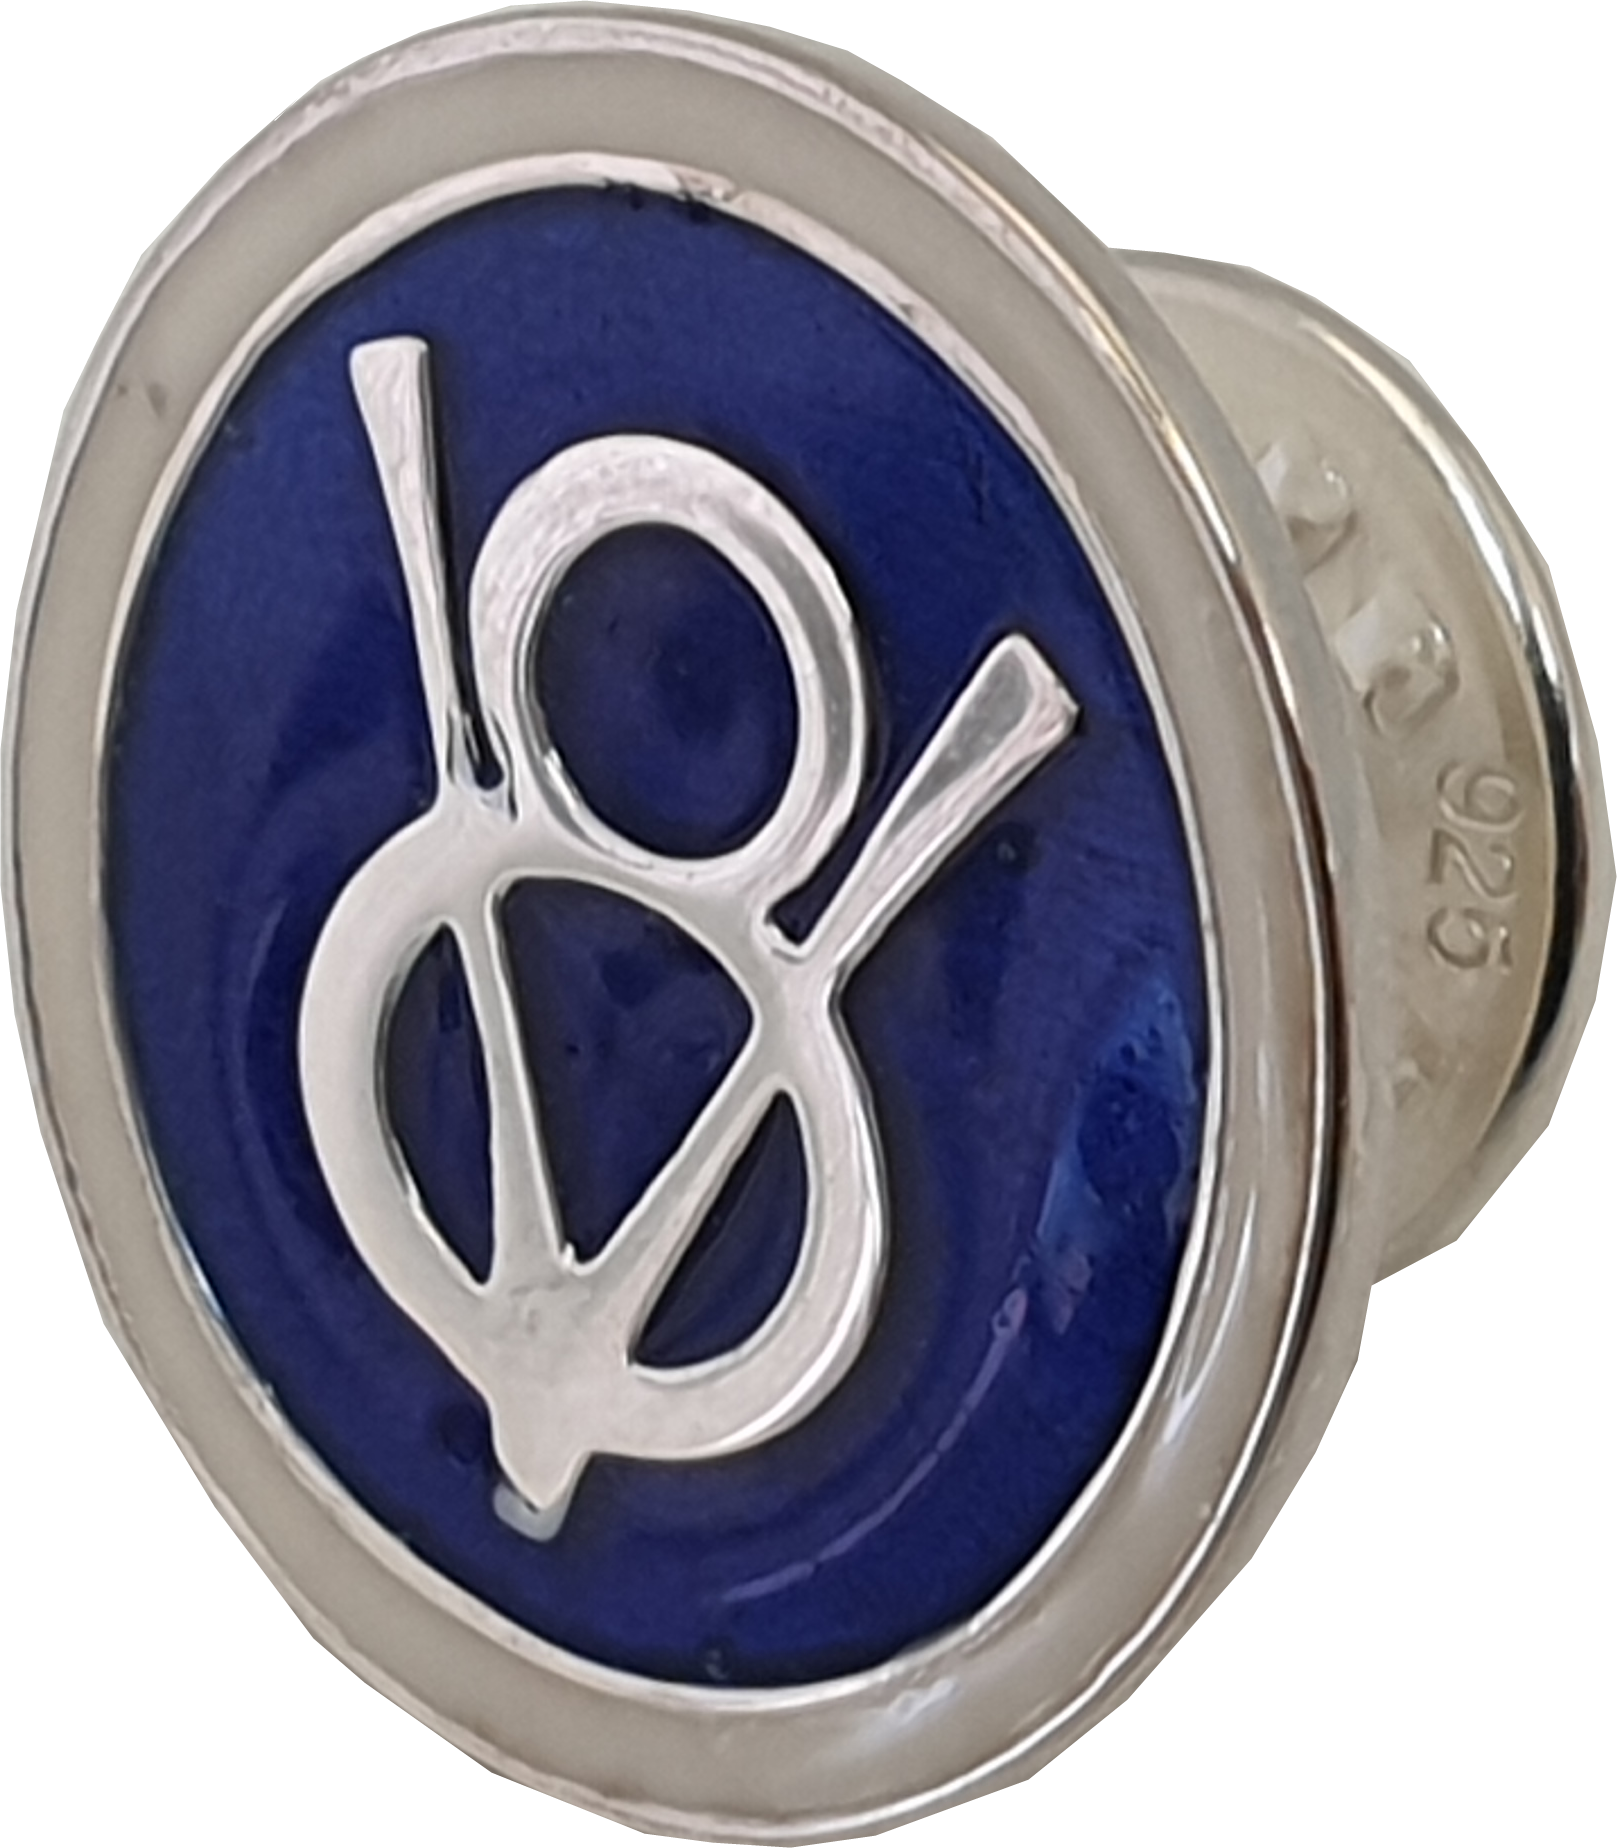 Ford V8 Lapel Pin